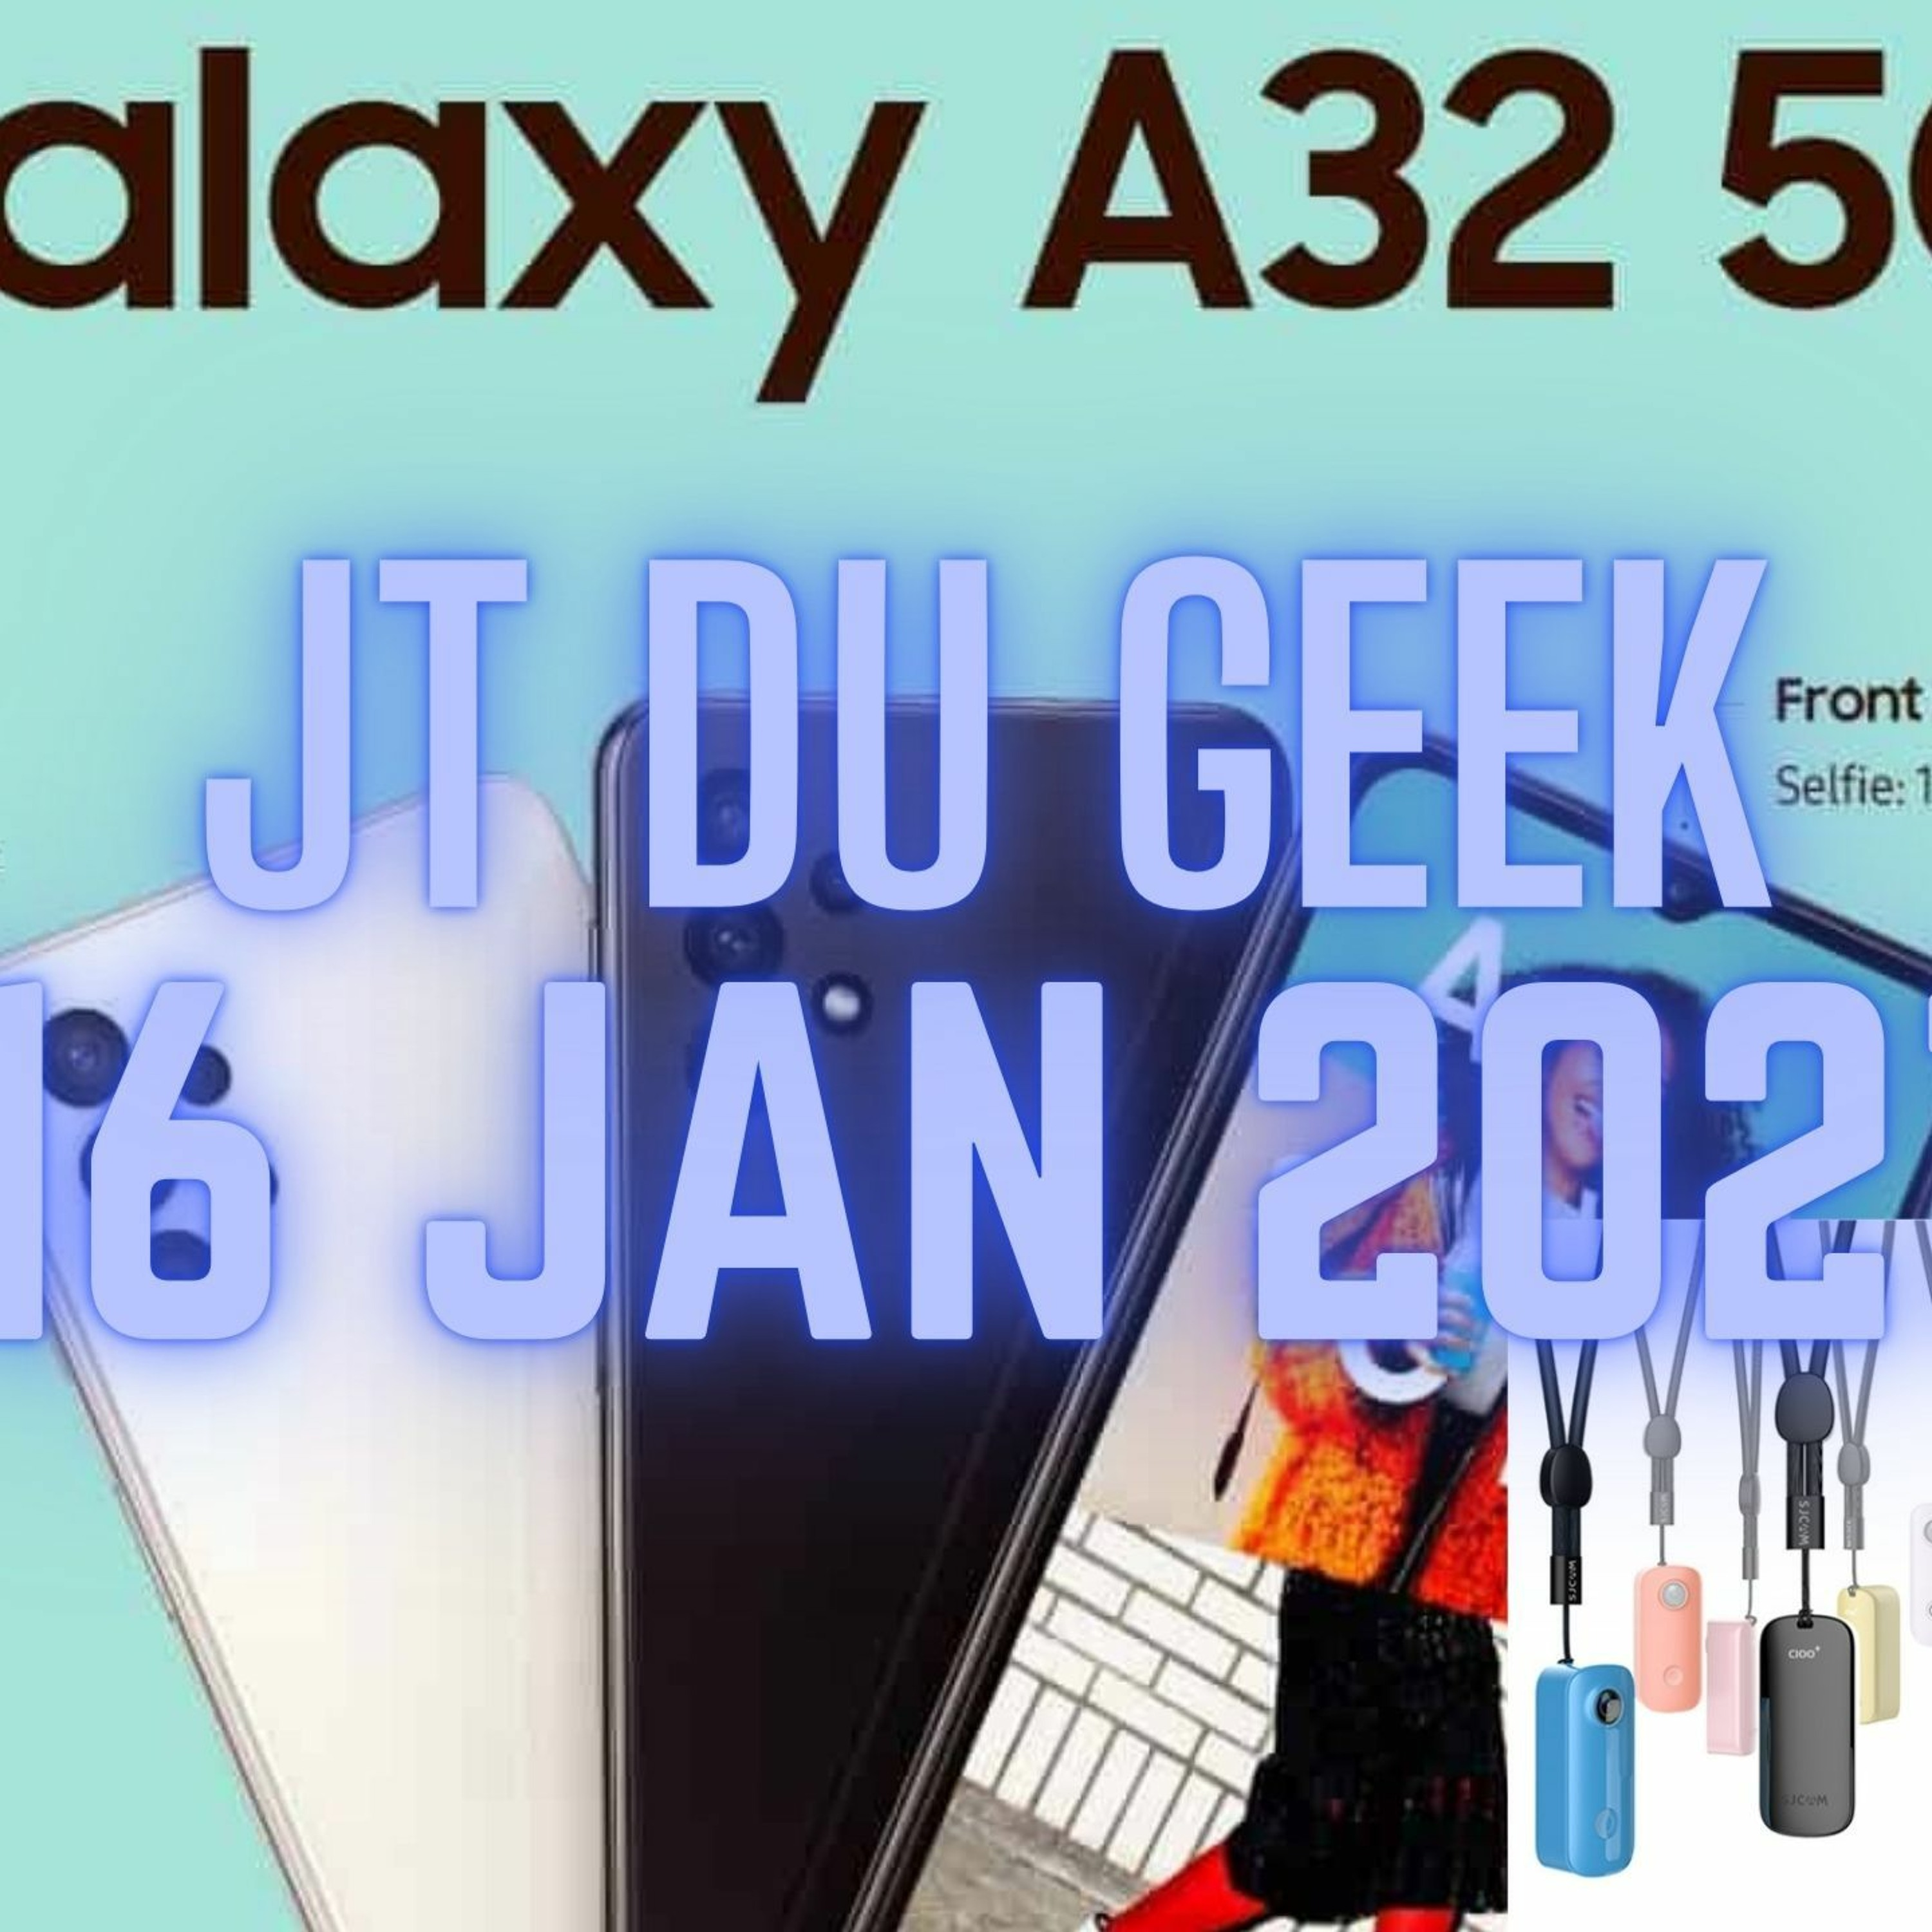 JT Du Geek 16 Jan, Xiaomi Ban, Sjcam C100 Plus,Galaxy A32 5G, Huawei Rachete Blackberry